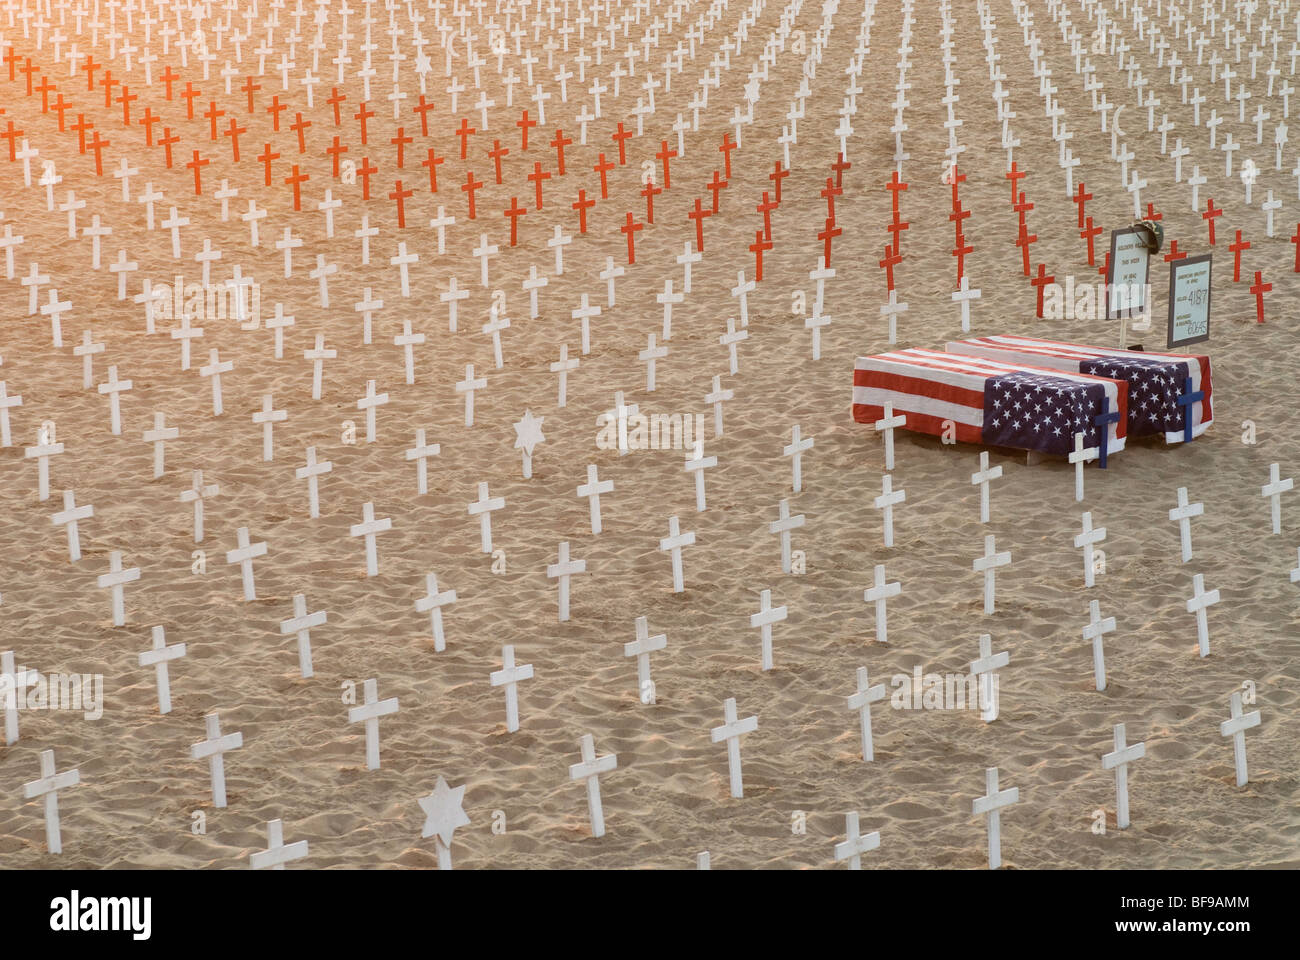 Iraq Memorial on beach near Santa Monica Pier; Santa Monica, CA - Stock Image